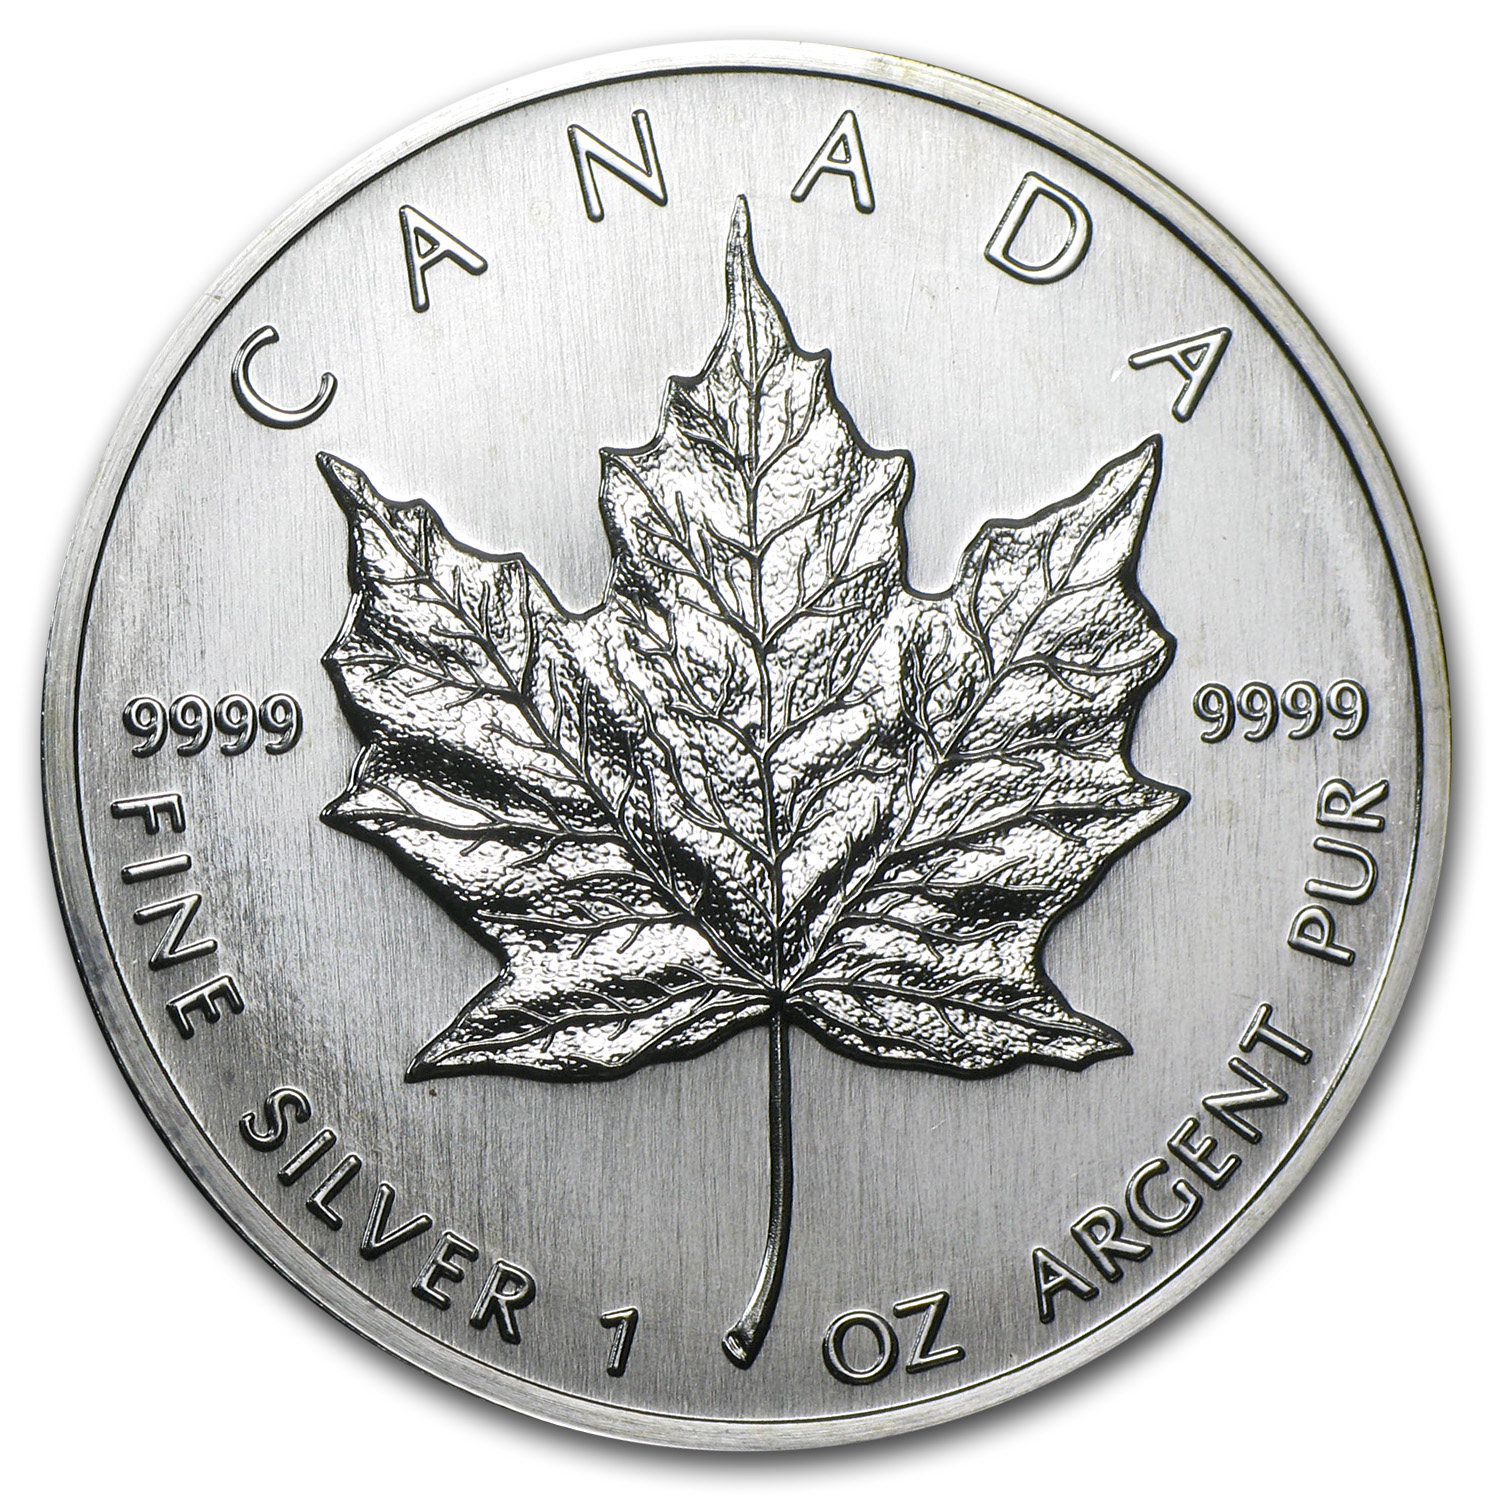 1989 1 oz Silver Canadian Maple Leaf BU